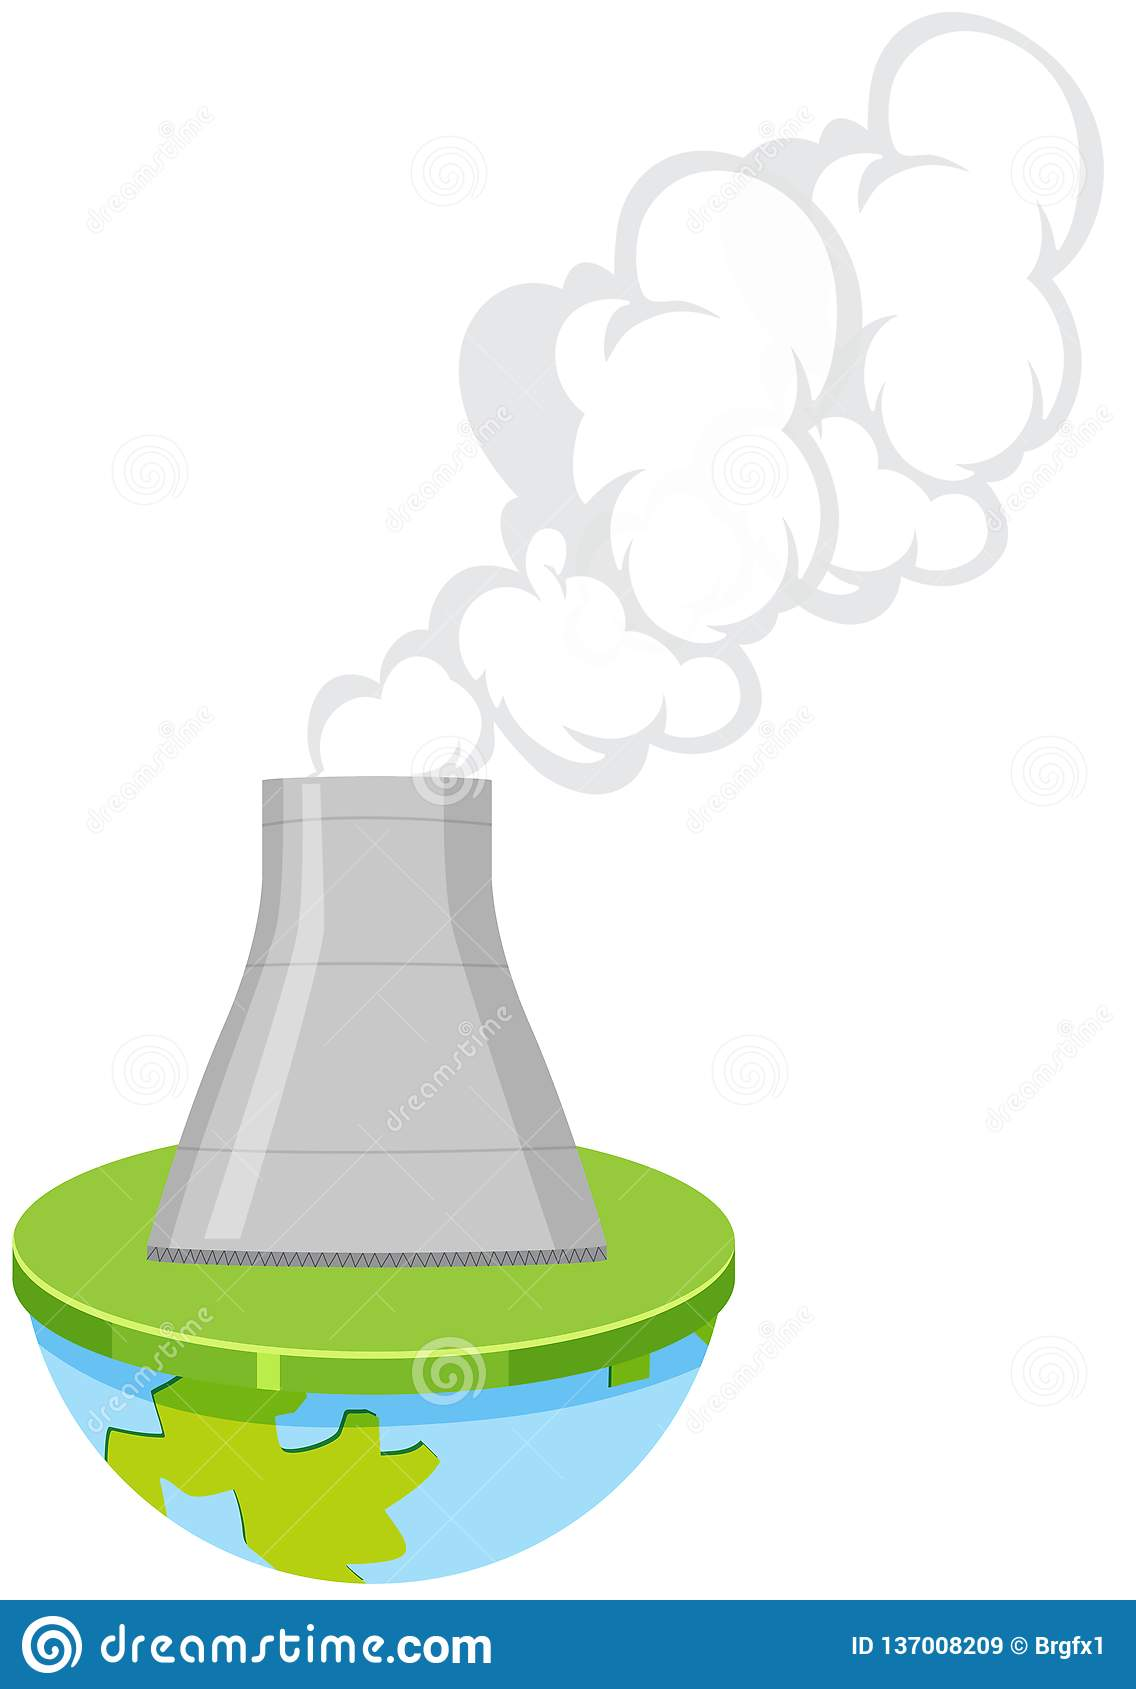 An Isolated Nuclear Power Plant Stock Vector Illustration Of Nuclear Clipart 137008209